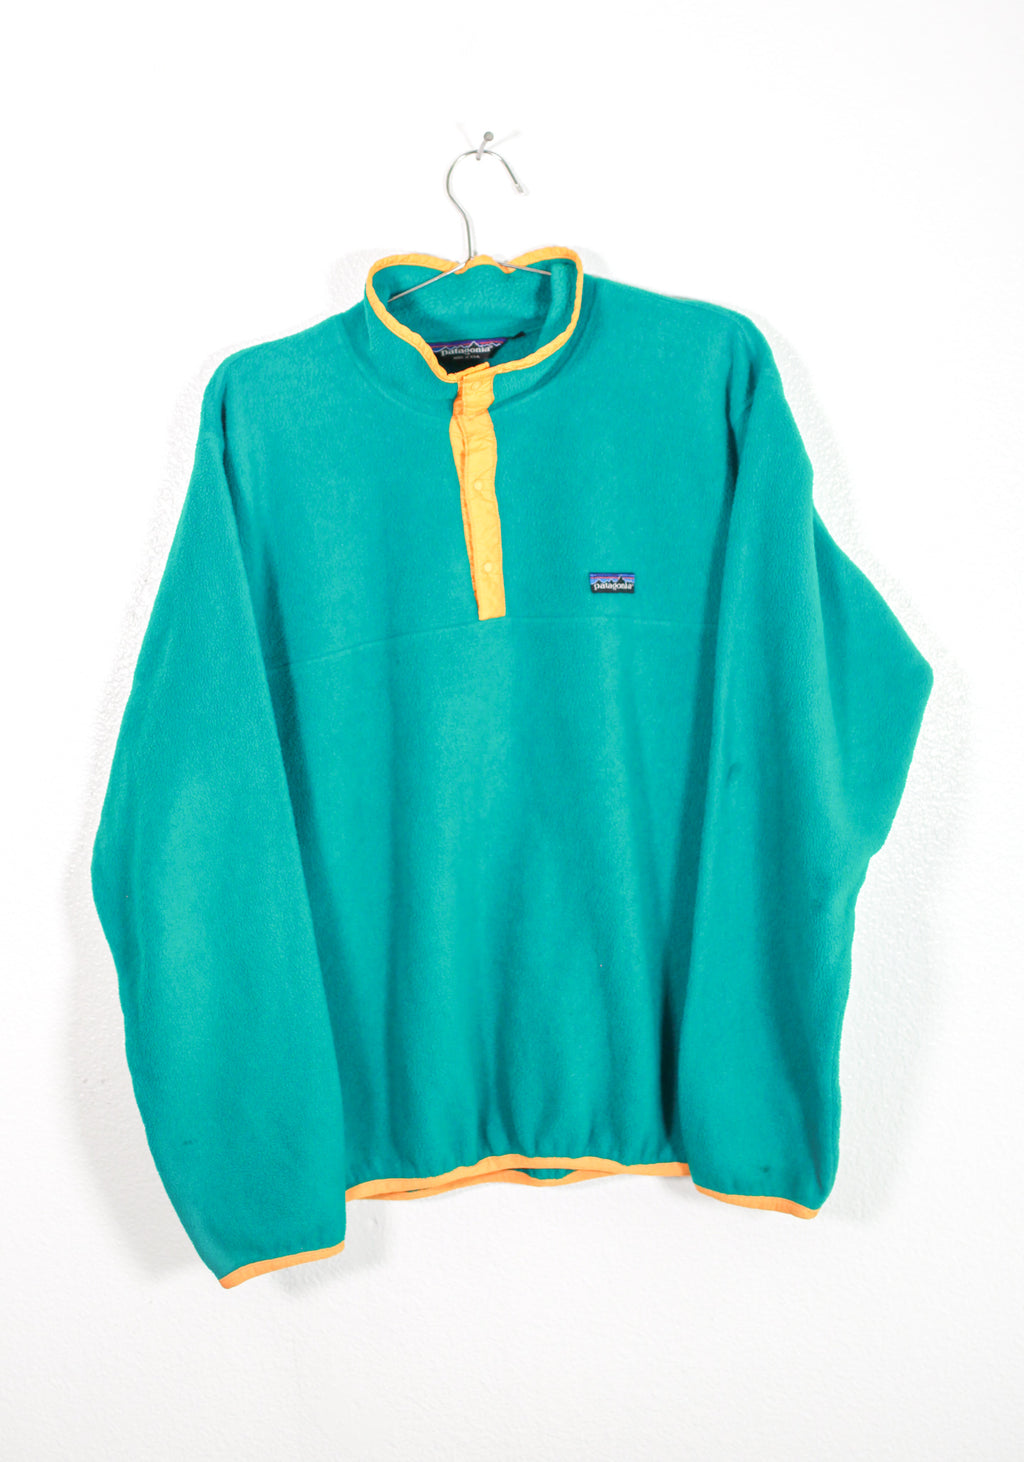 Vintage Green Patagonia Fleece Pull Over